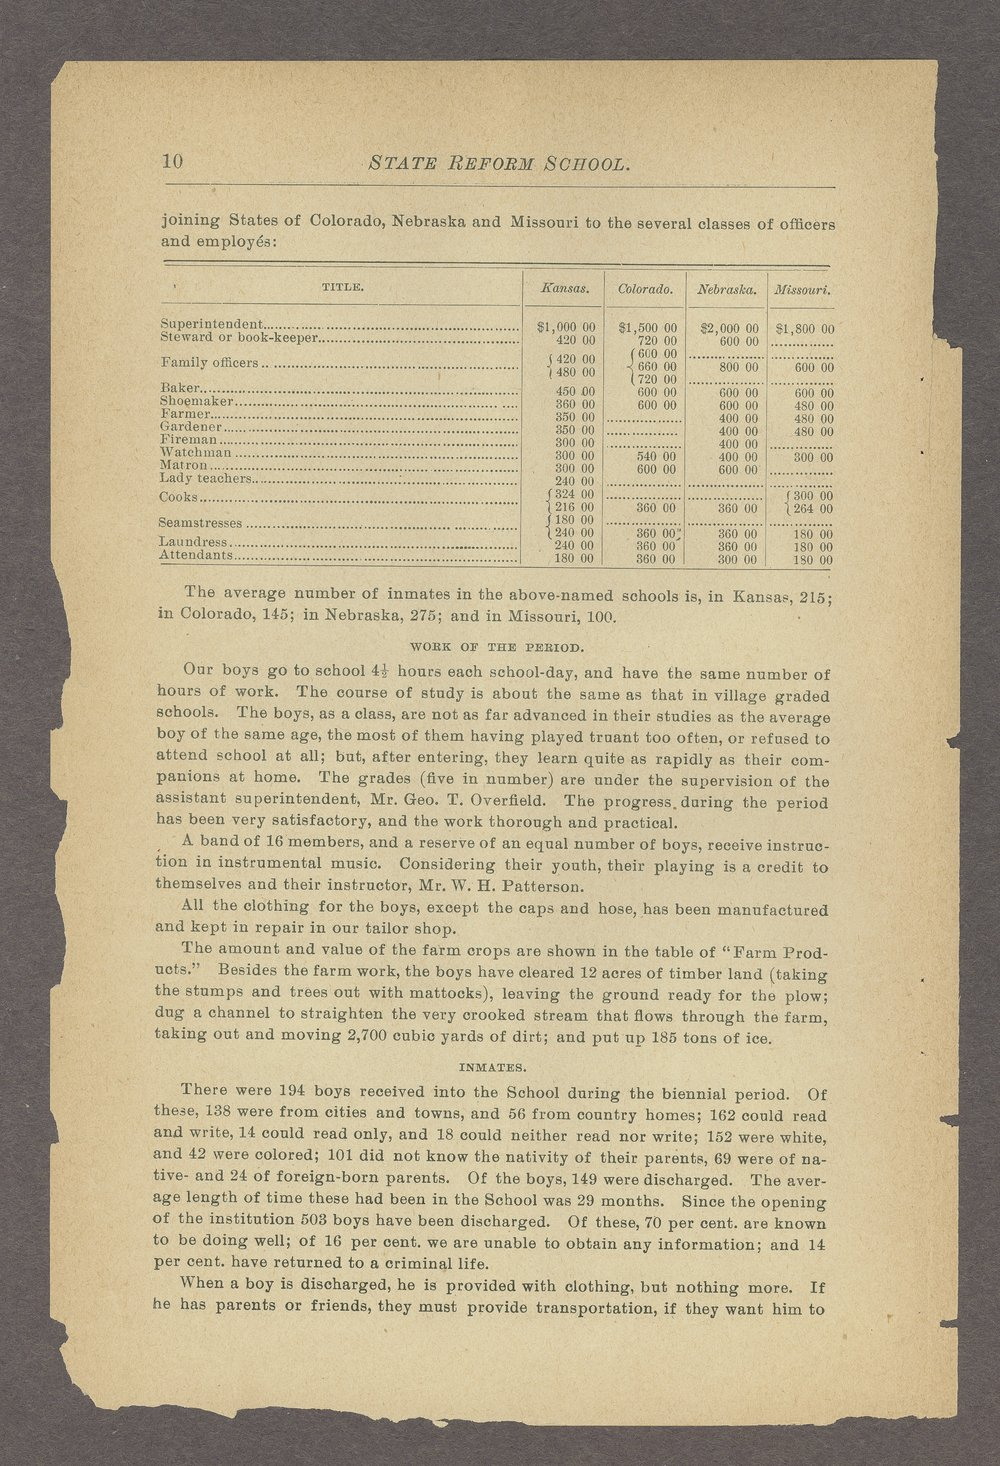 Biennial report of the State Reform School, 1892 - 10